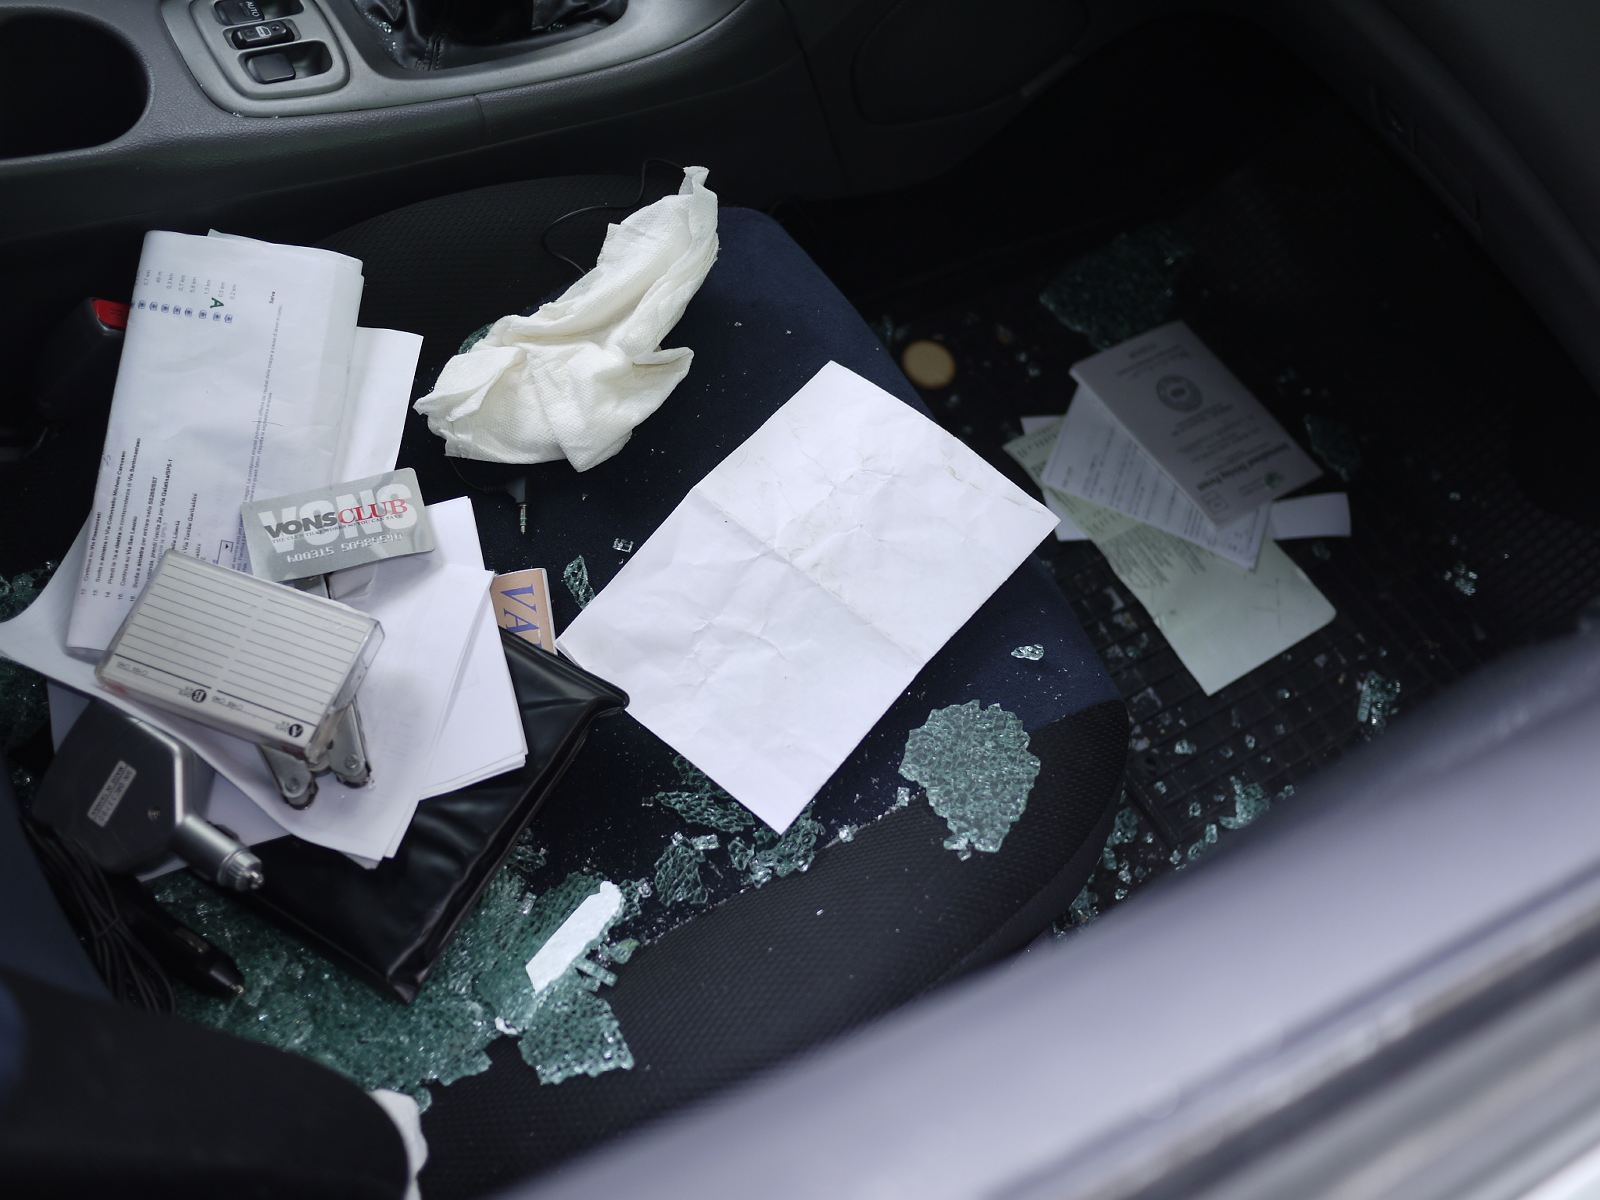 Shards of broken windows on the passenger's side seat